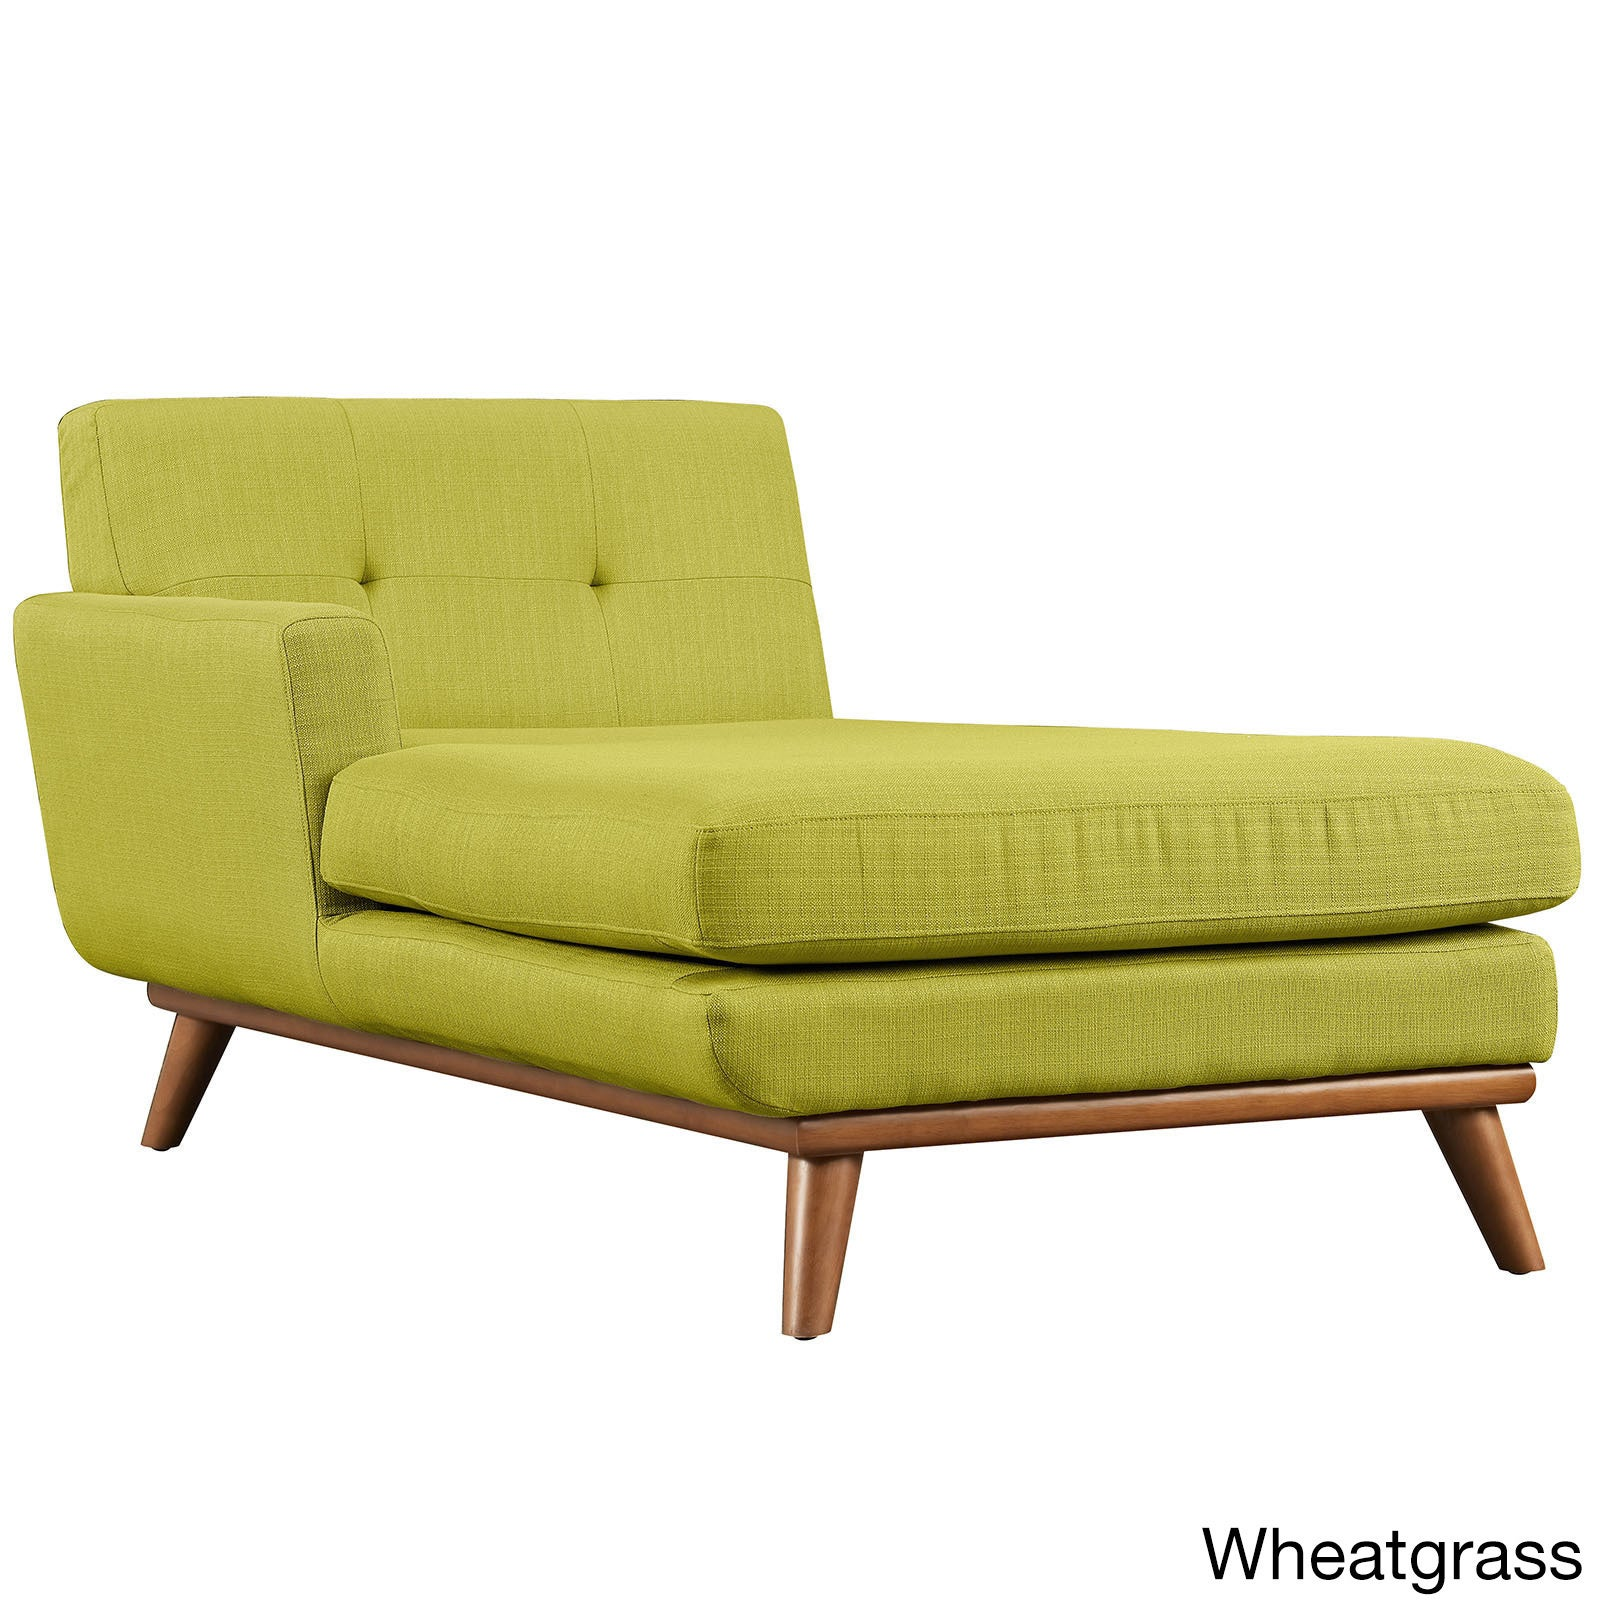 Shop carson carrington sigtuna left arm mid century chaise lounge free shipping today overstock com 10858347